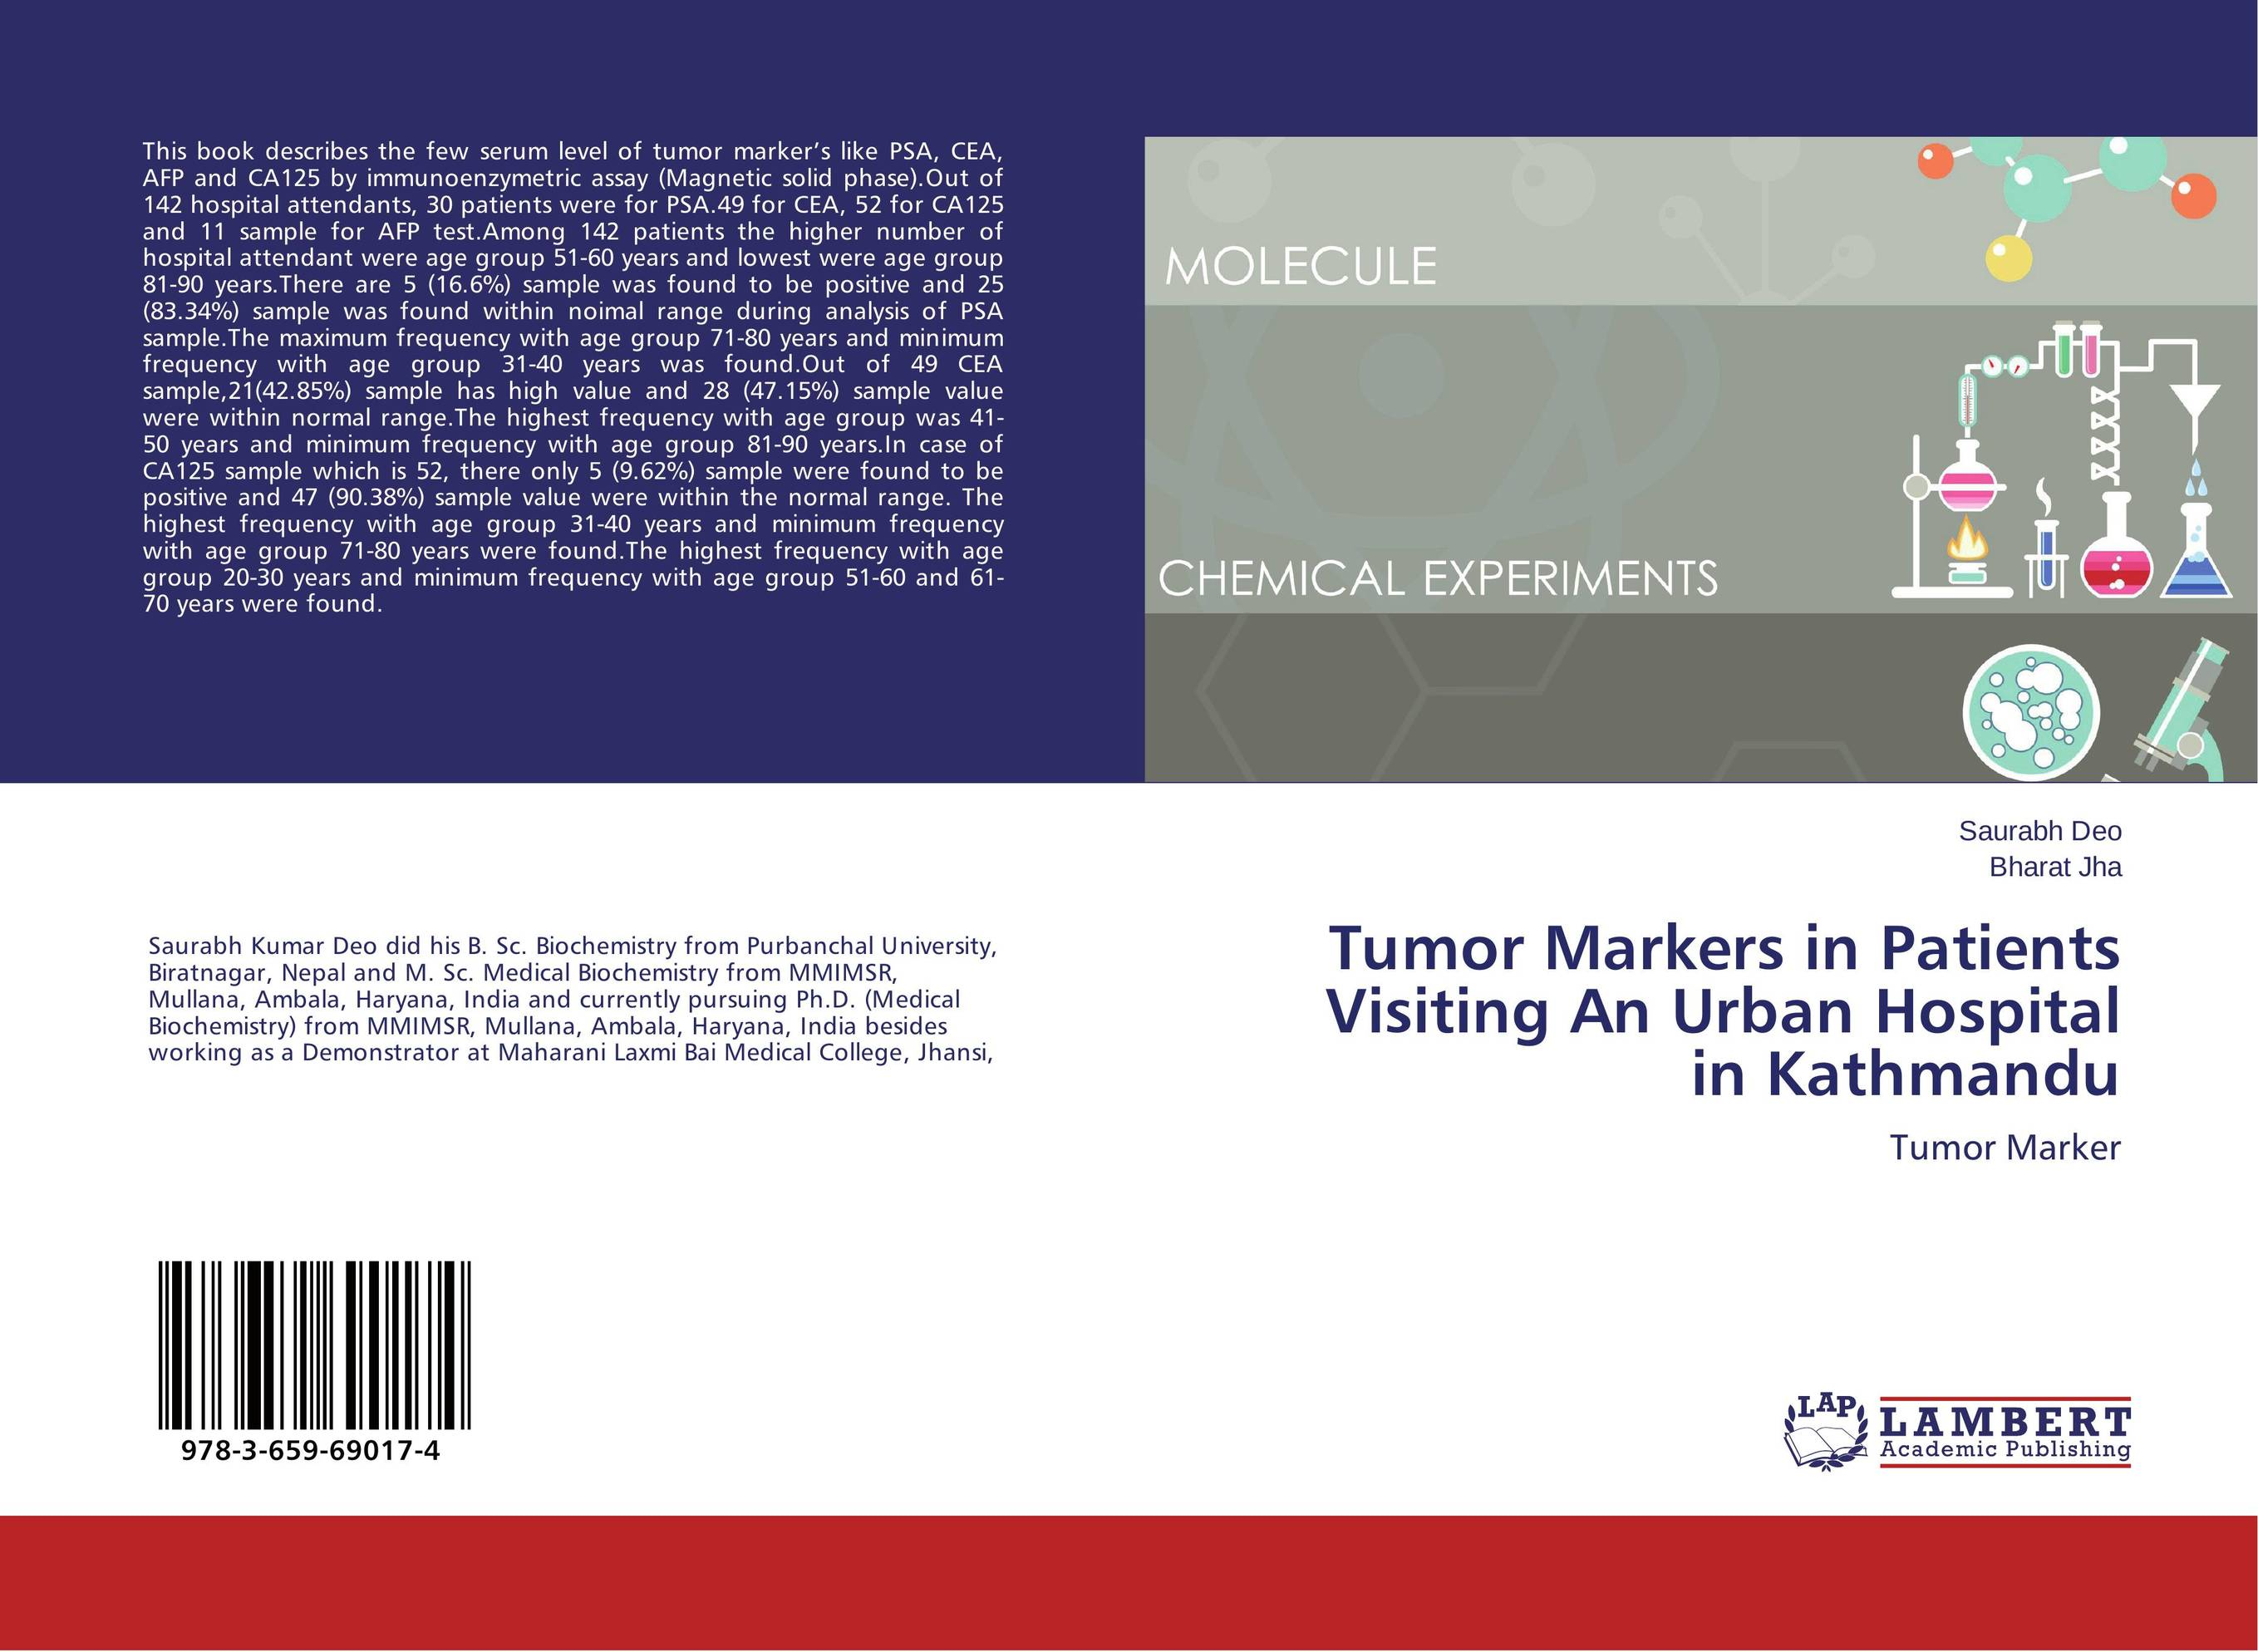 Tumor Markers in Patients Visiting An Urban Hospital in Kathmandu